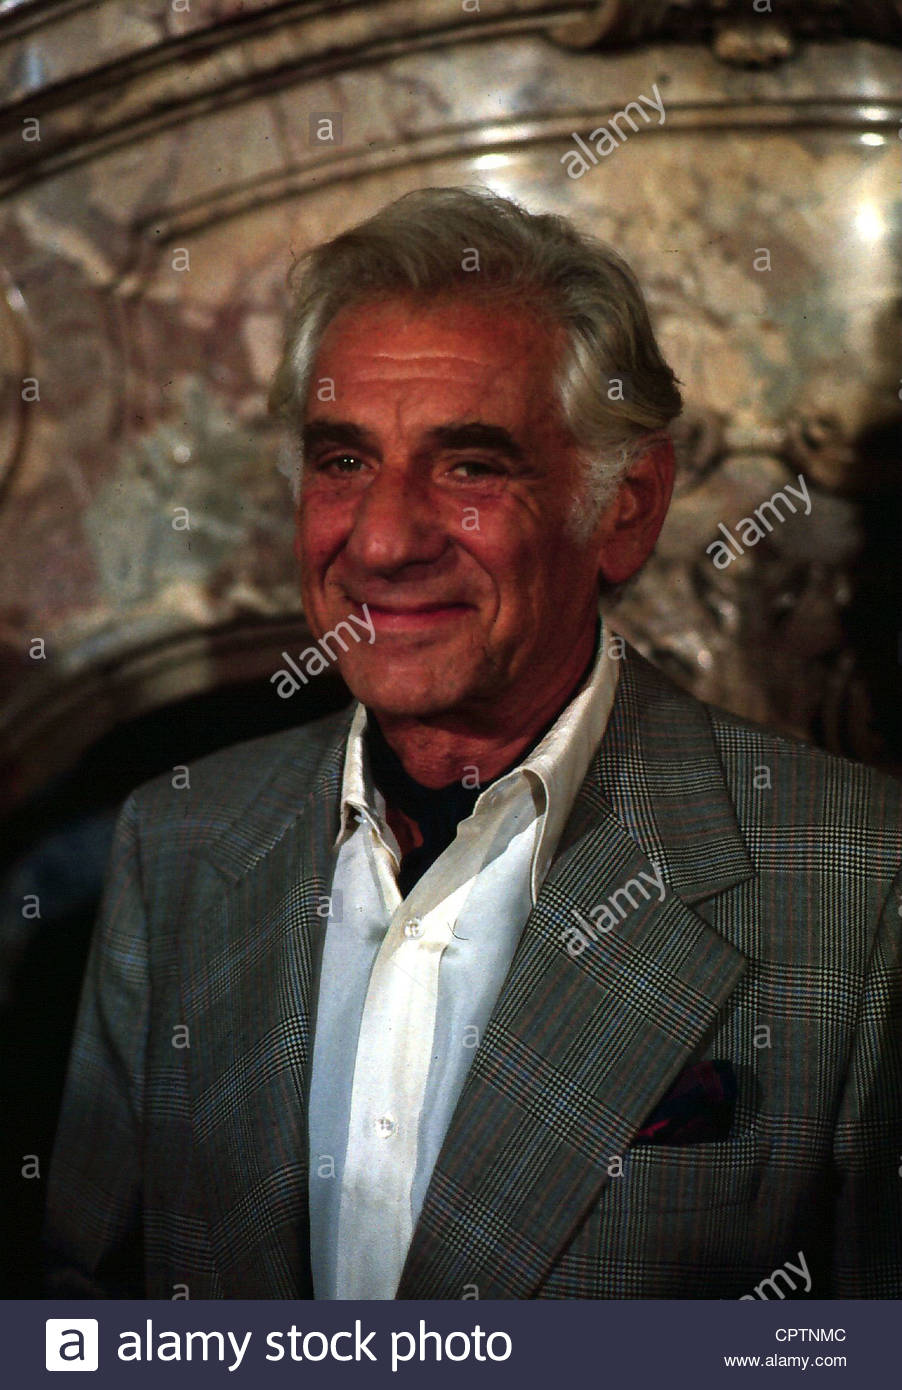 Bernstein, Leonard, 25.8.1918 - 14.10.1990, US conductor, composer, portrait, late 1980s, smiling, - Stock Image